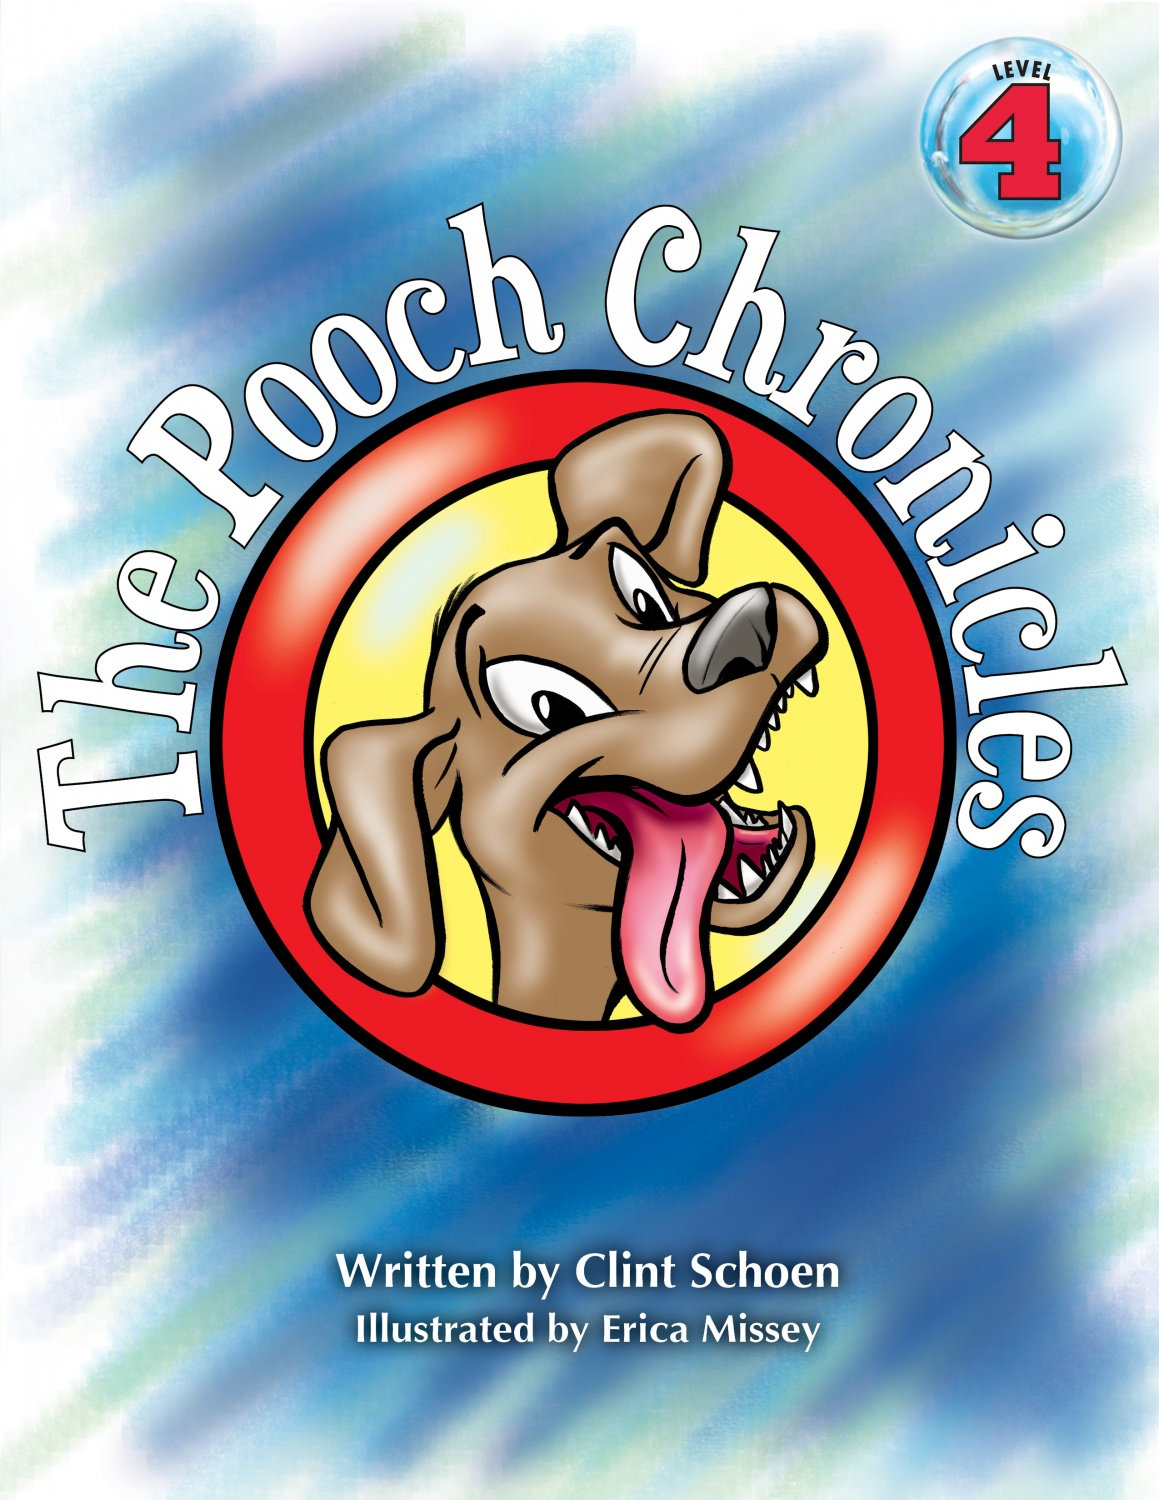 pooch chronicles front cover 1